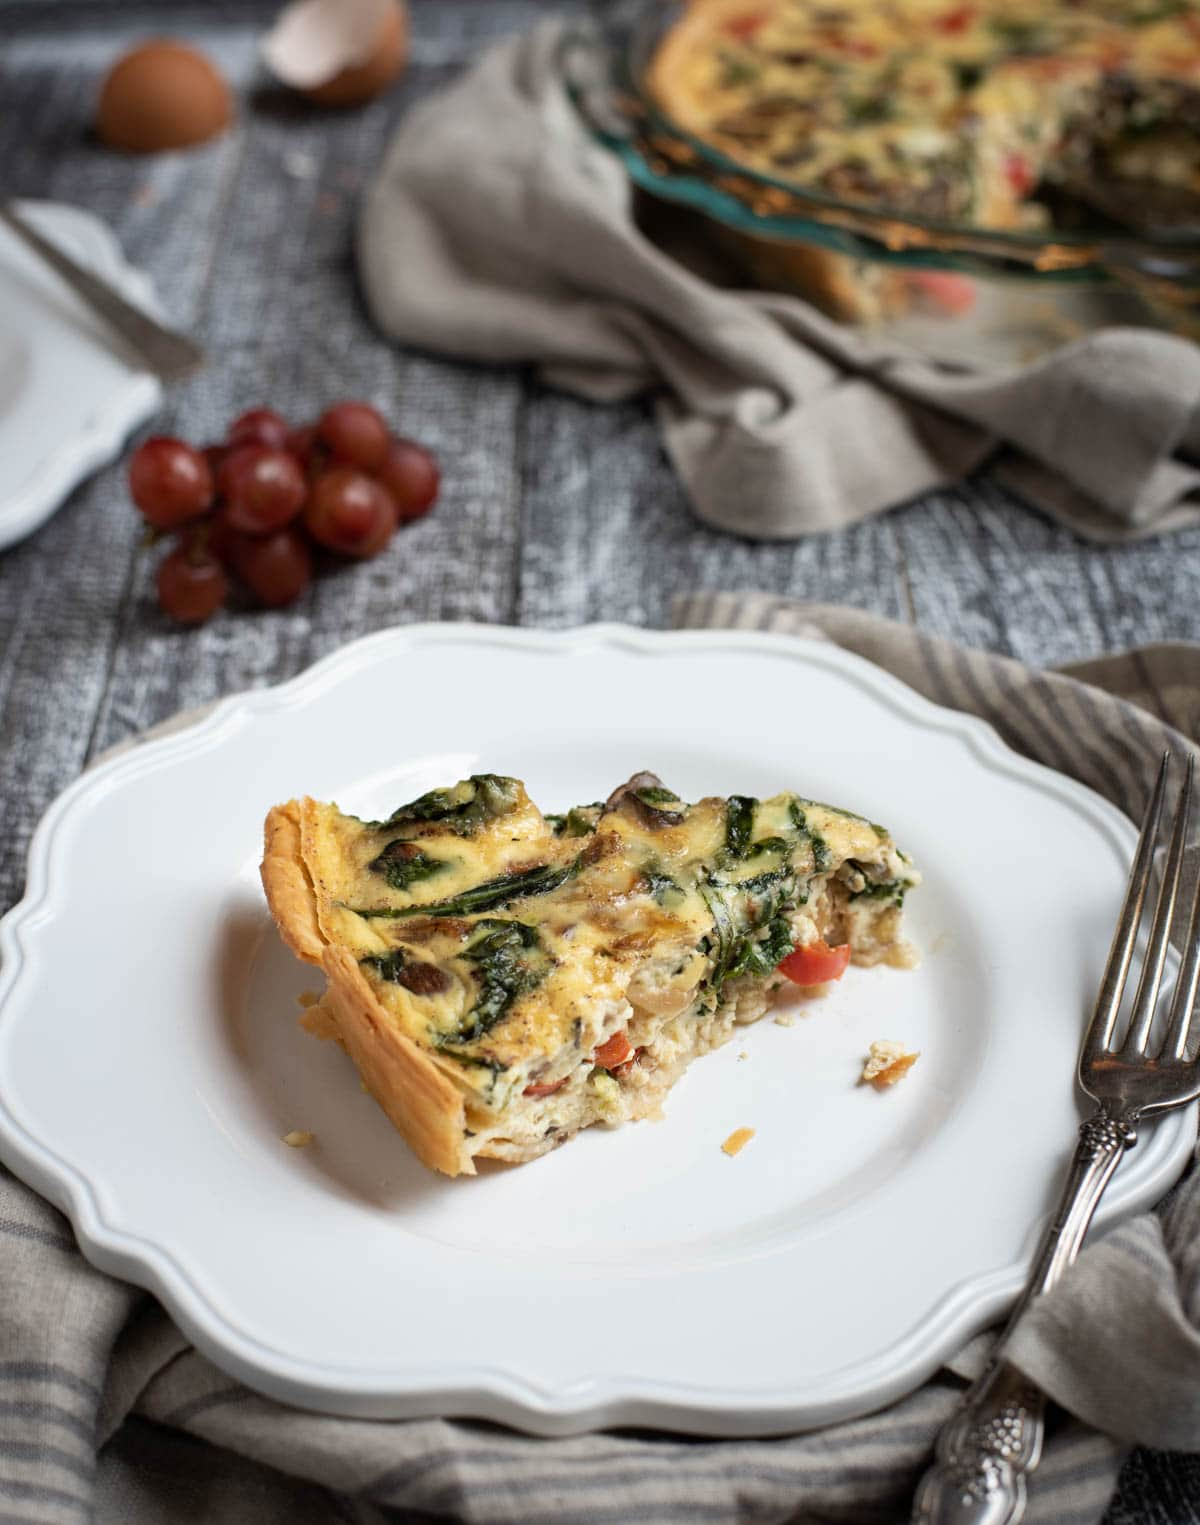 Plate with slice of easy veggie quiche